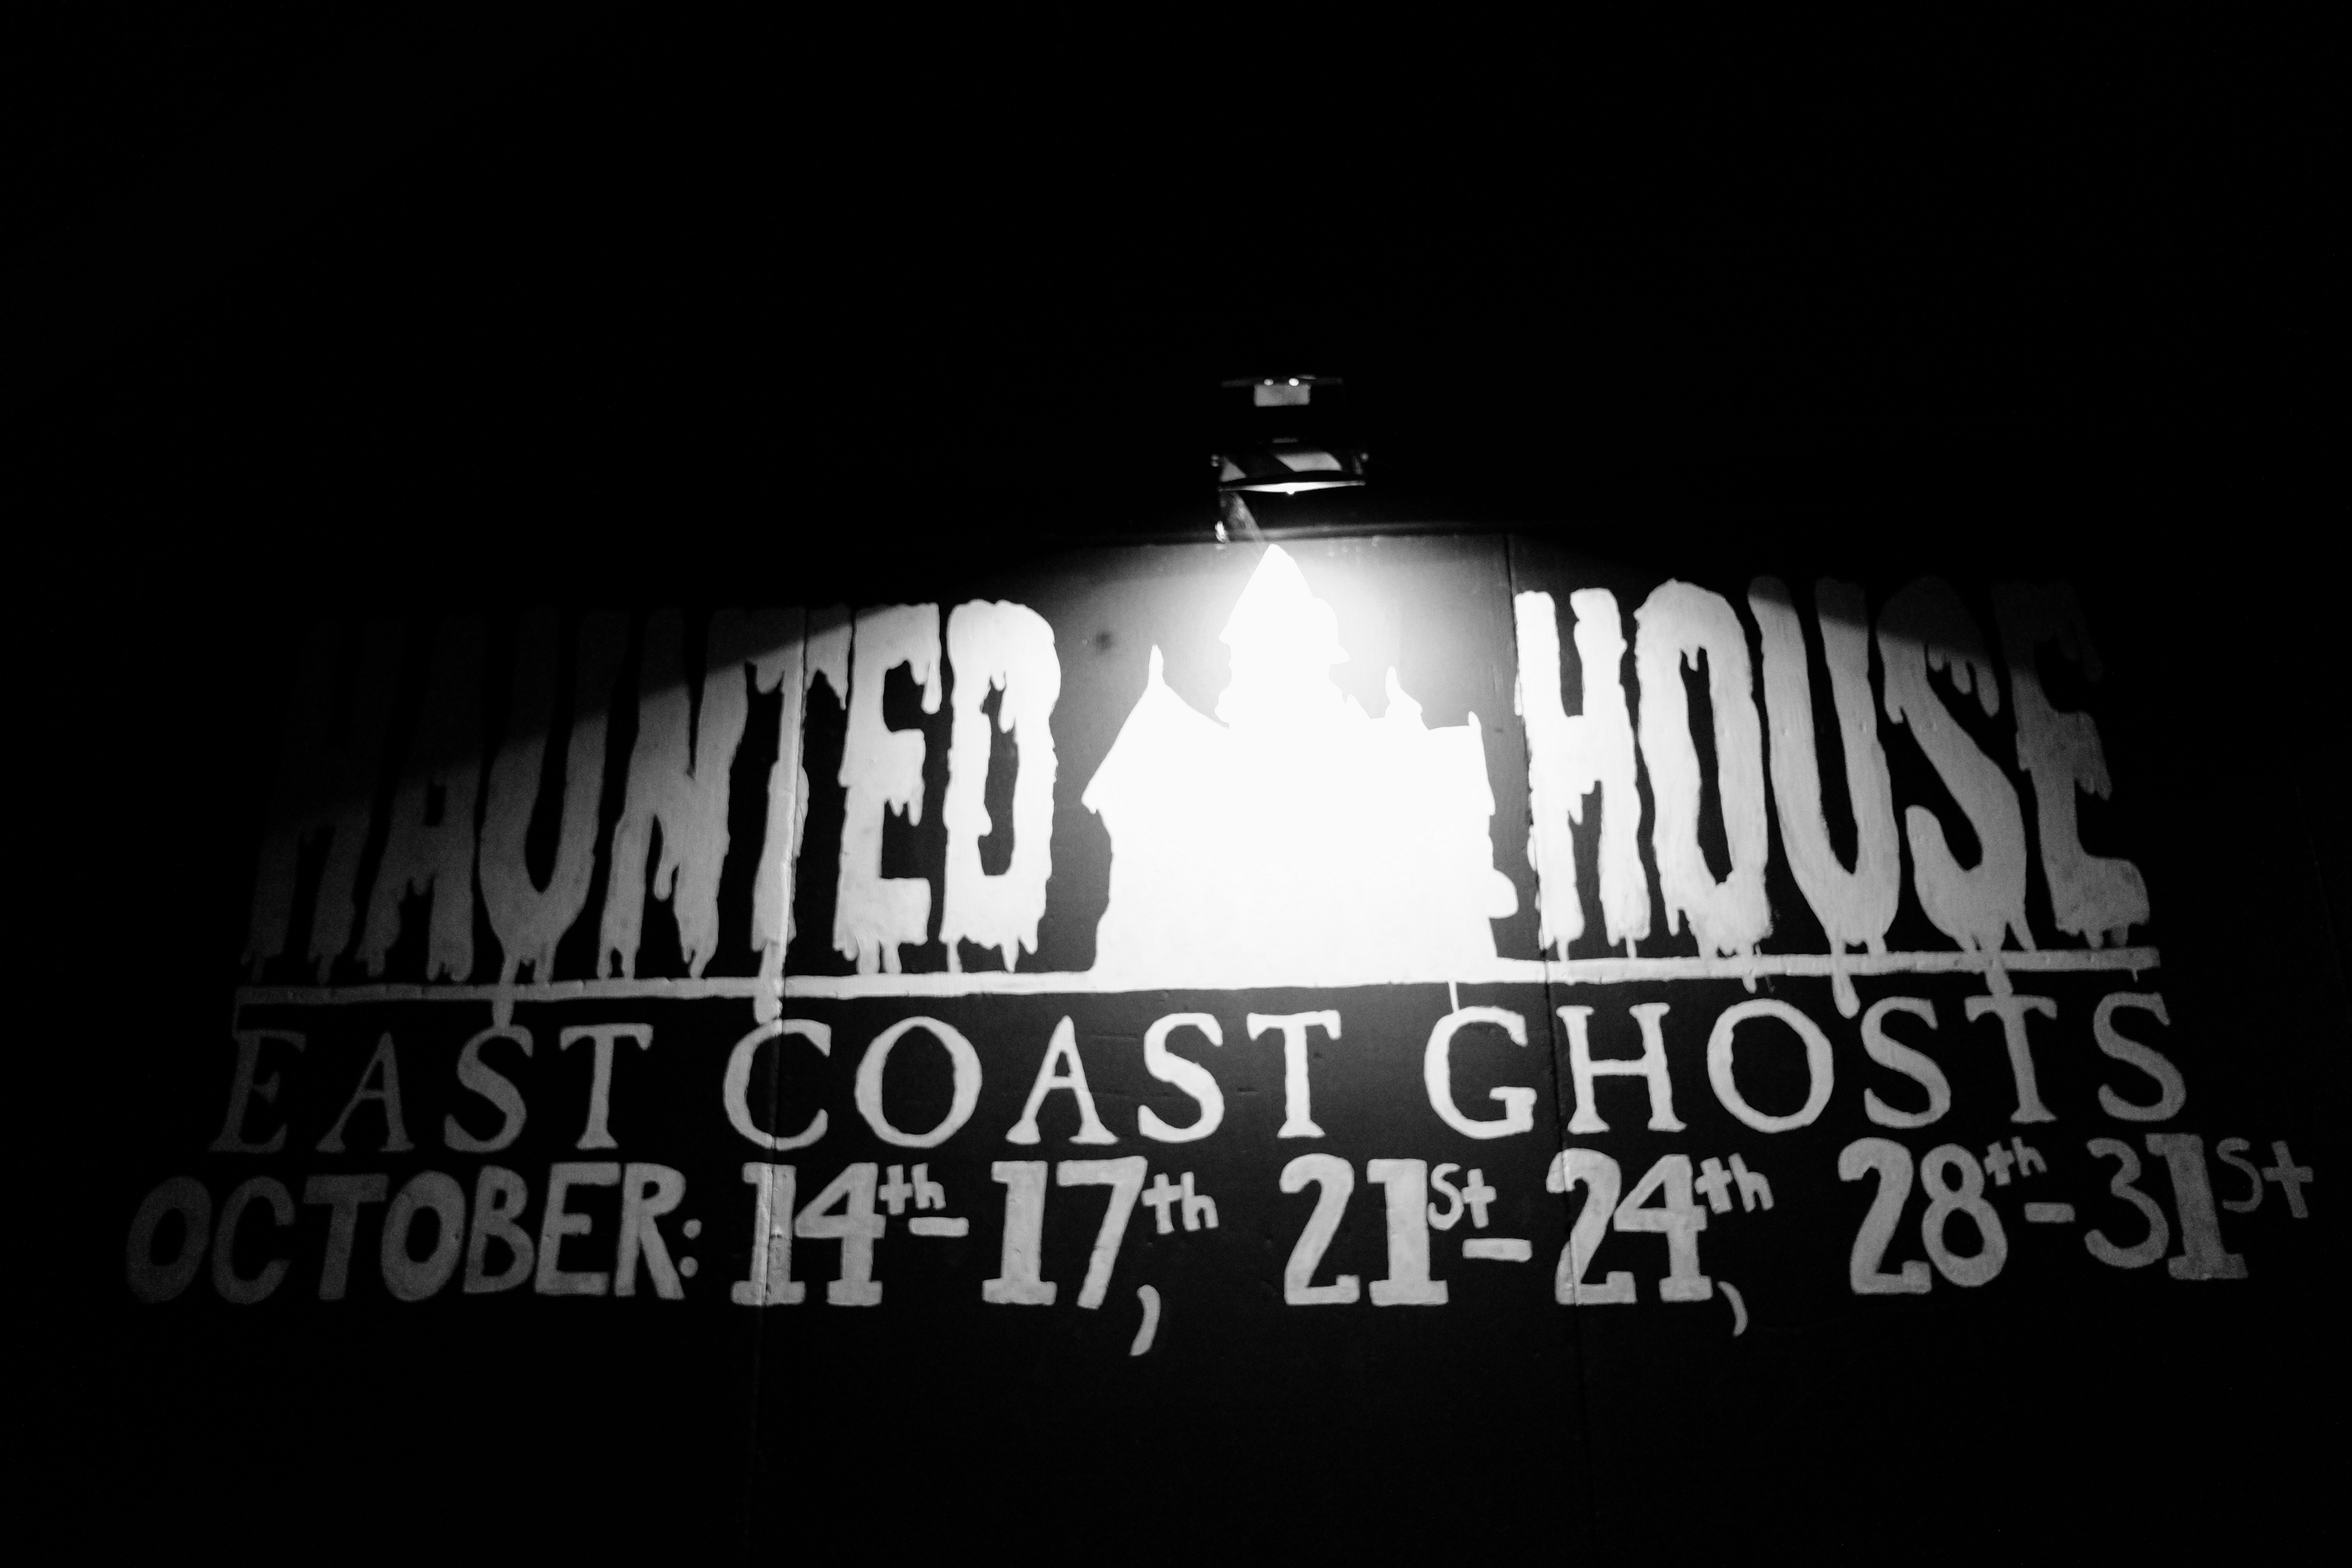 A sign listing the opening times of the Bluenose Ghosts Festival Haunted House